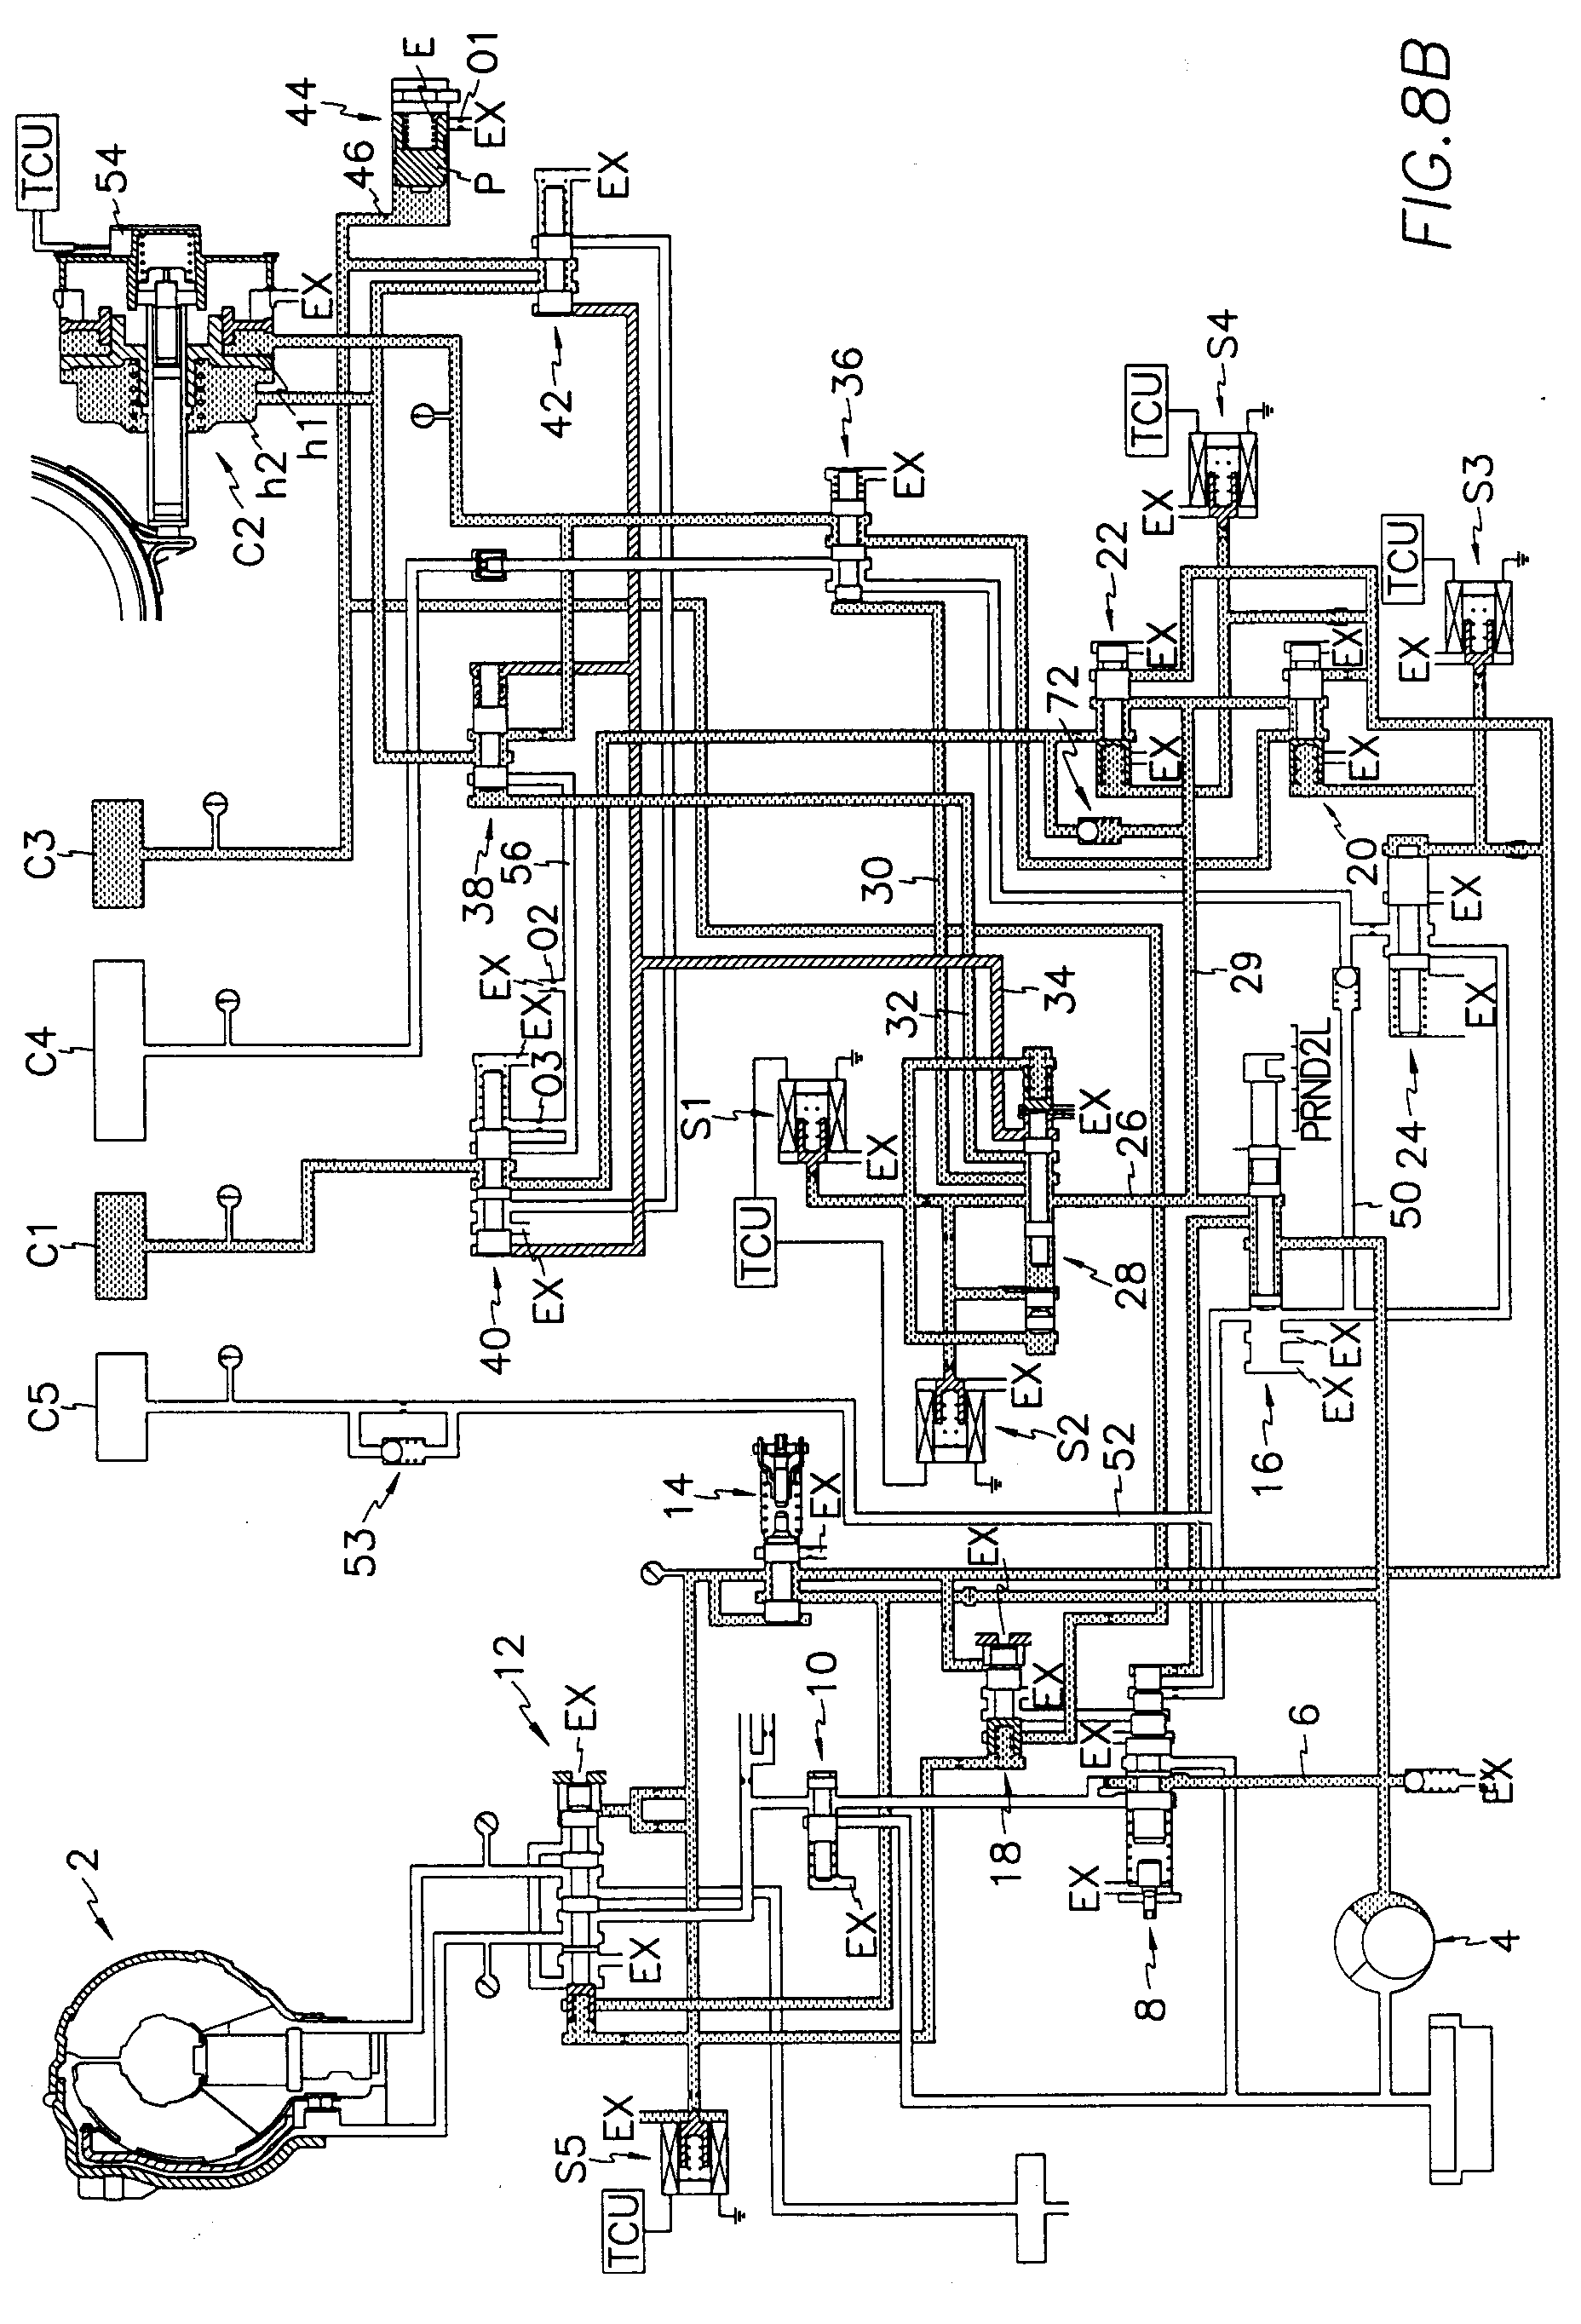 international s1900 wiring diagram   34 wiring diagram